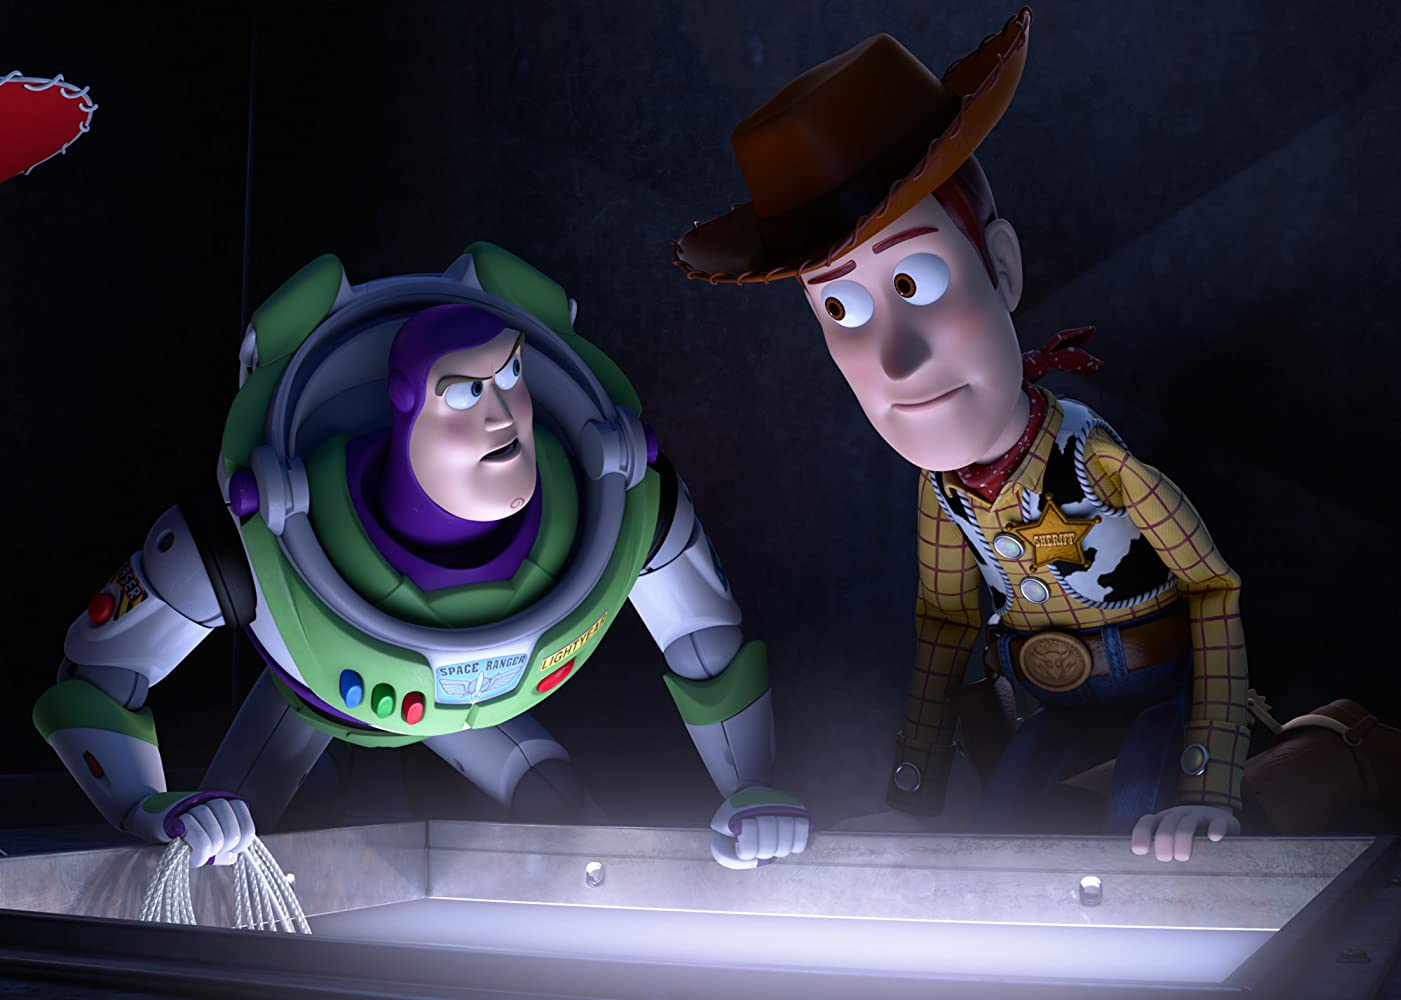 Tom Hanks and Tim Allen in Toy Story 4 (2019)